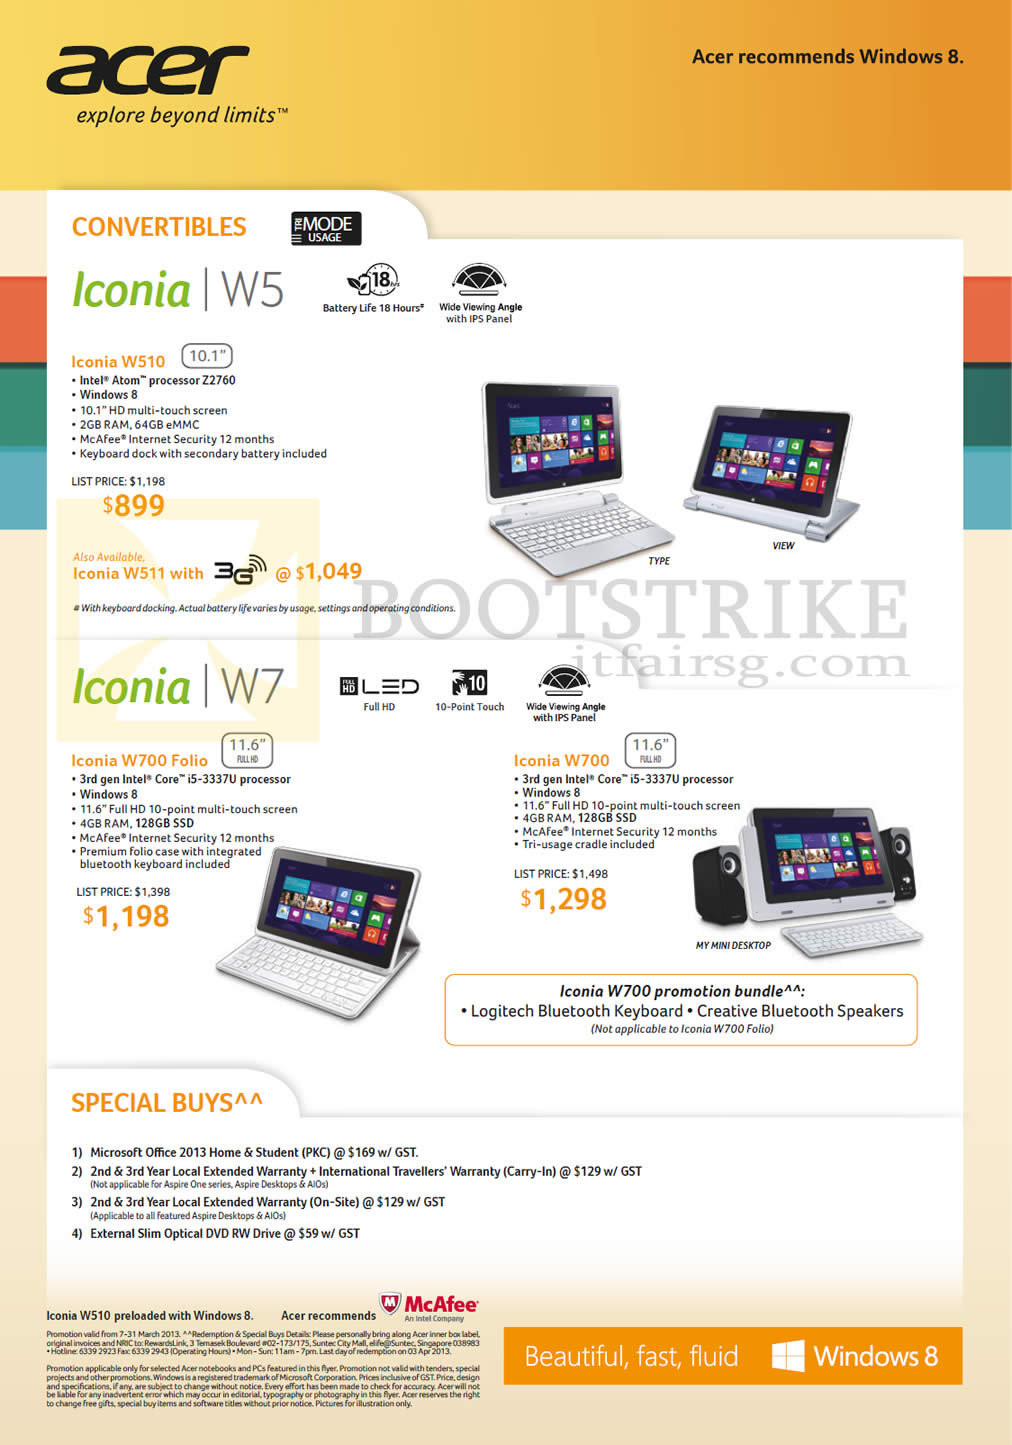 IT SHOW 2013 price list image brochure of Acer Tablets Iconia Convertibles Iconia W510, W700 Folio, W700